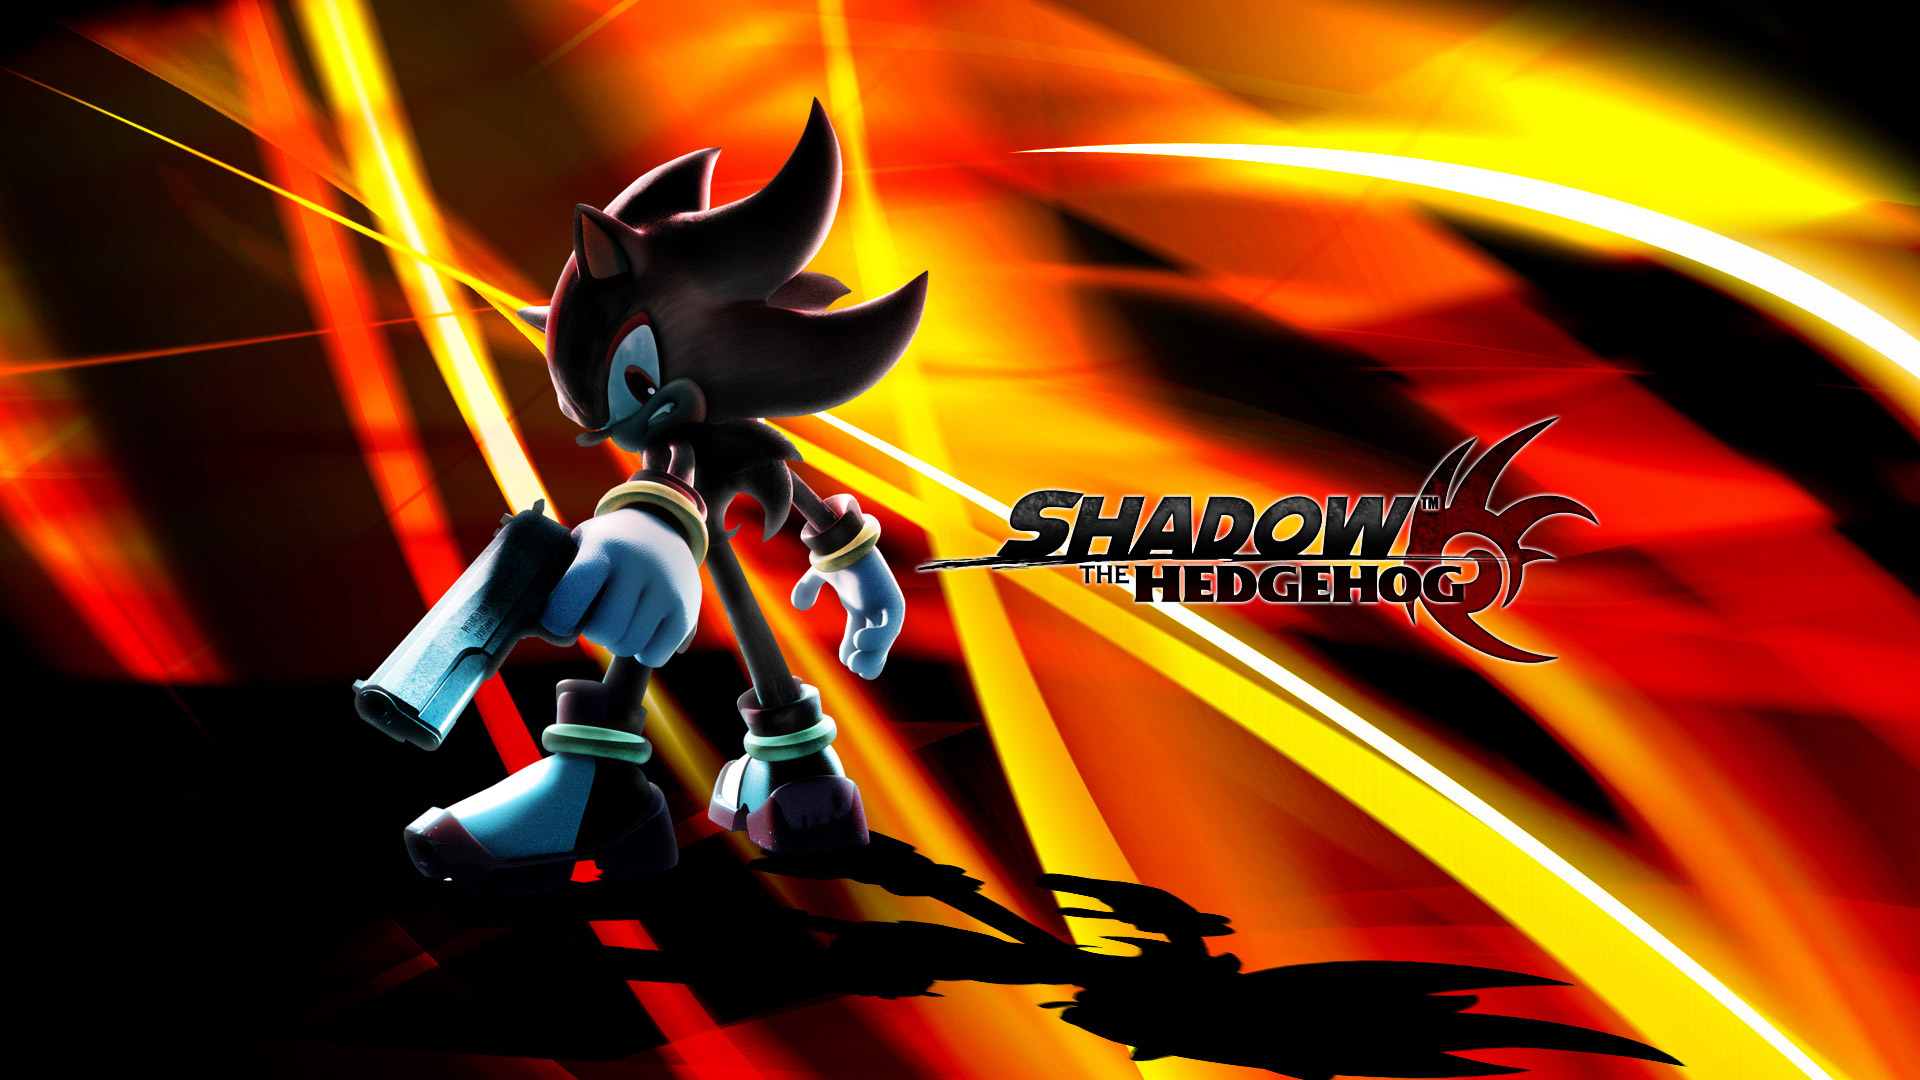 Shadow the Hedgehog Wallpaper in 1920x1080